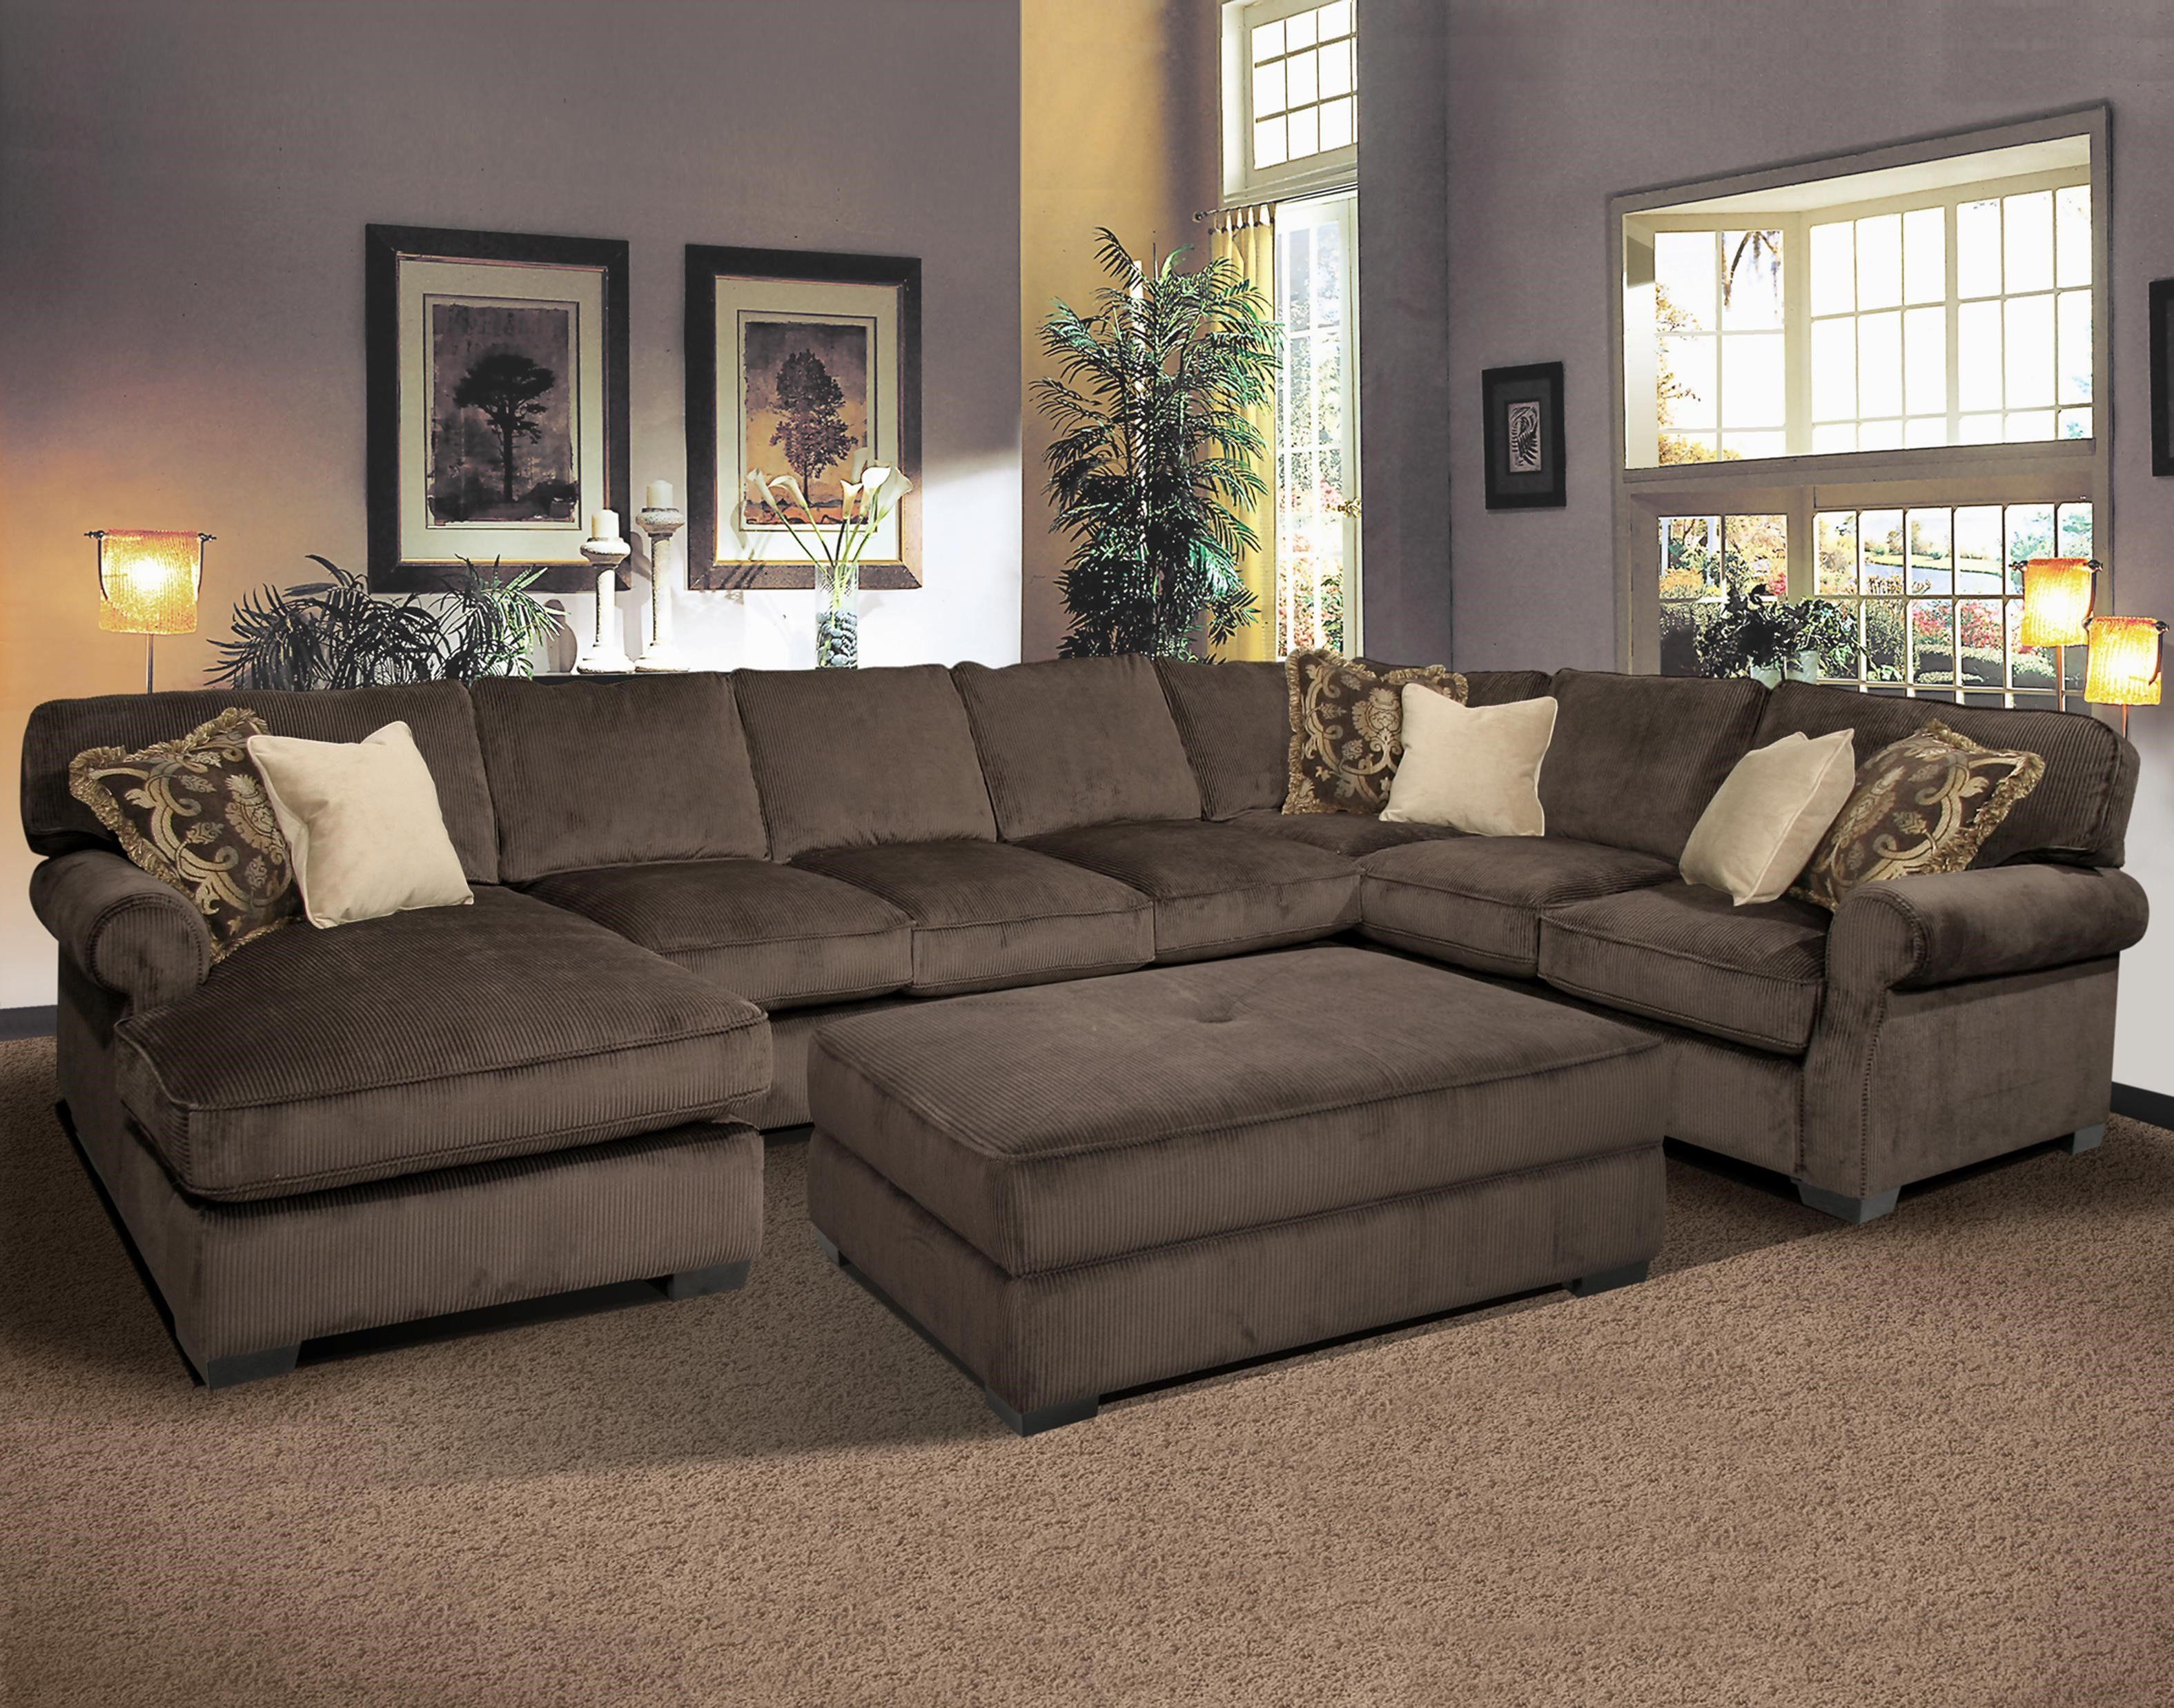 Overstuffed Sectional Sofa With Chaise